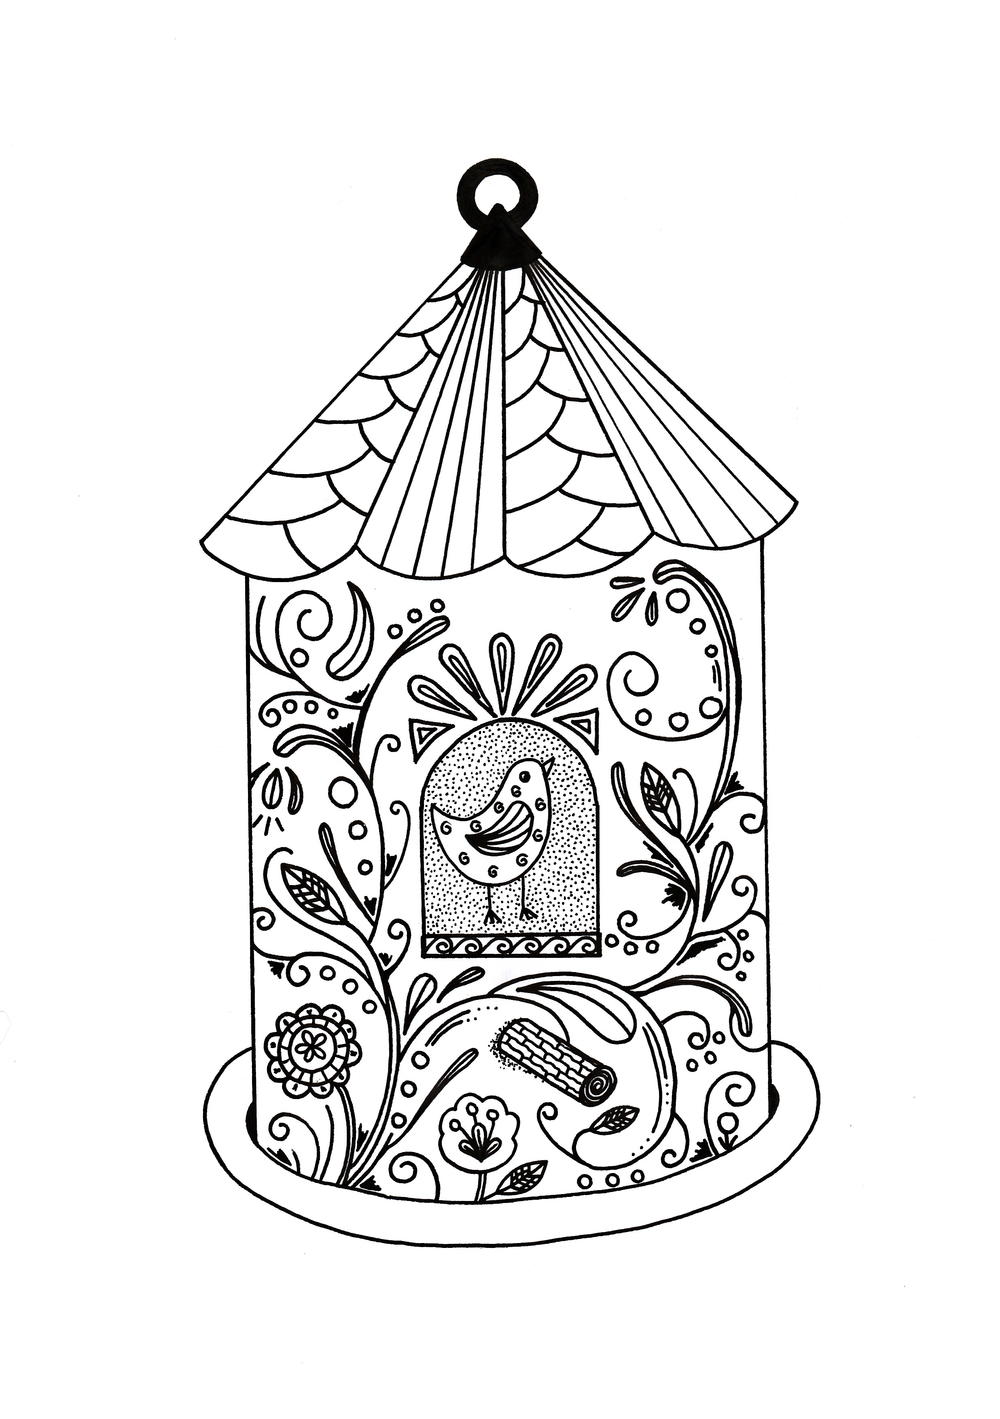 Whimsical Bird House Adult Coloring